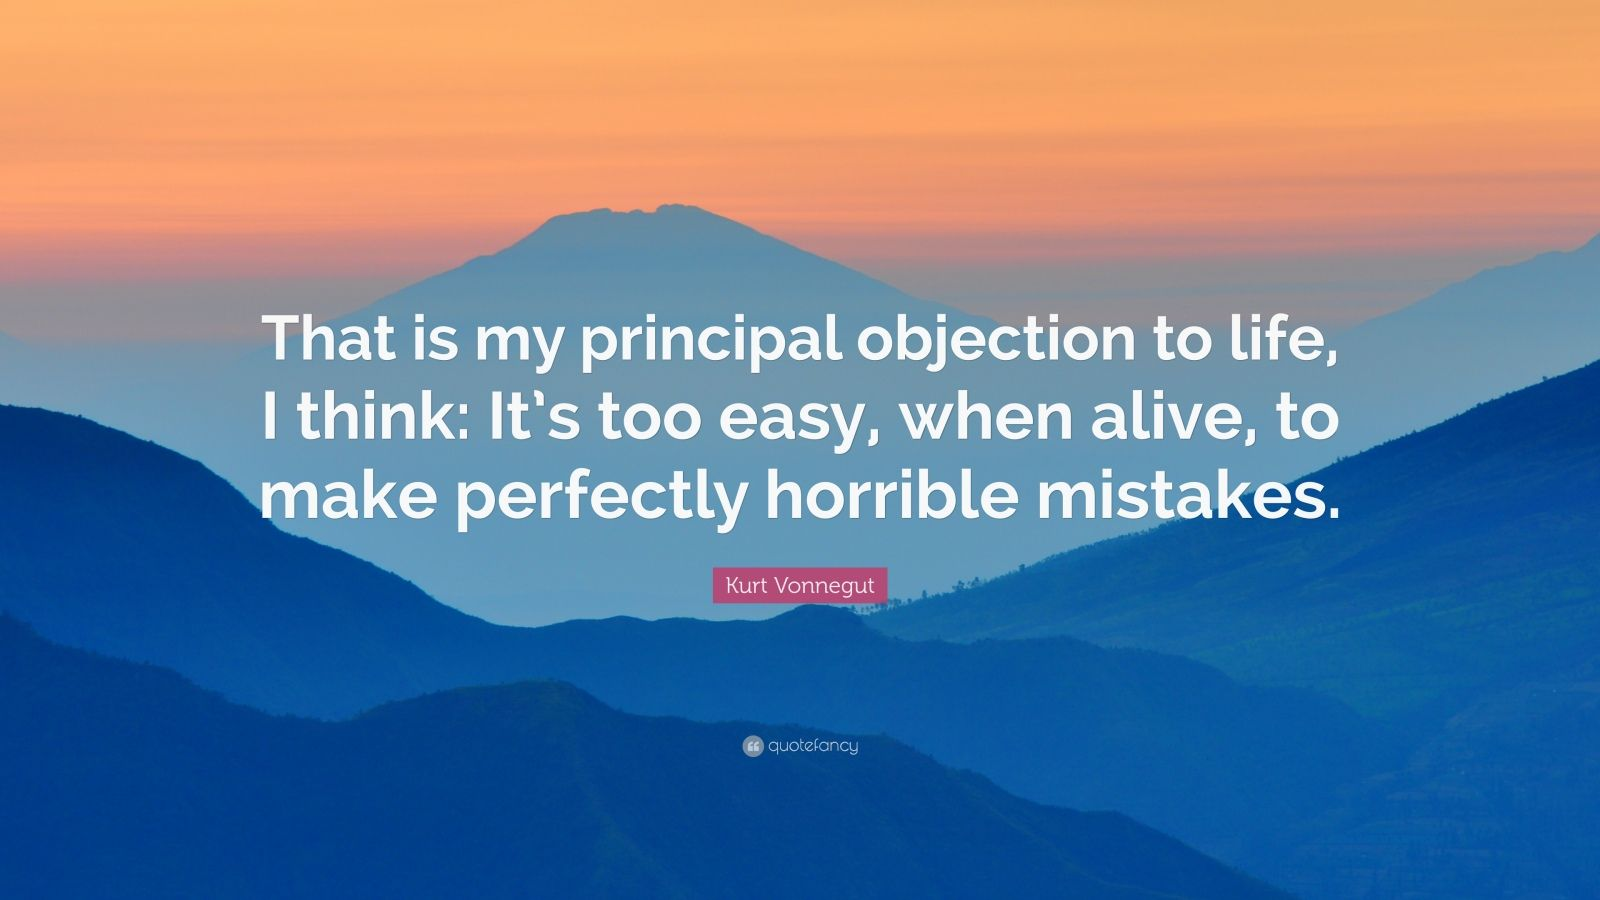 """Kurt Vonnegut Quote: """"That is my principal objection to life, I think: It's too easy, when alive, to make perfectly horrible mistakes."""""""